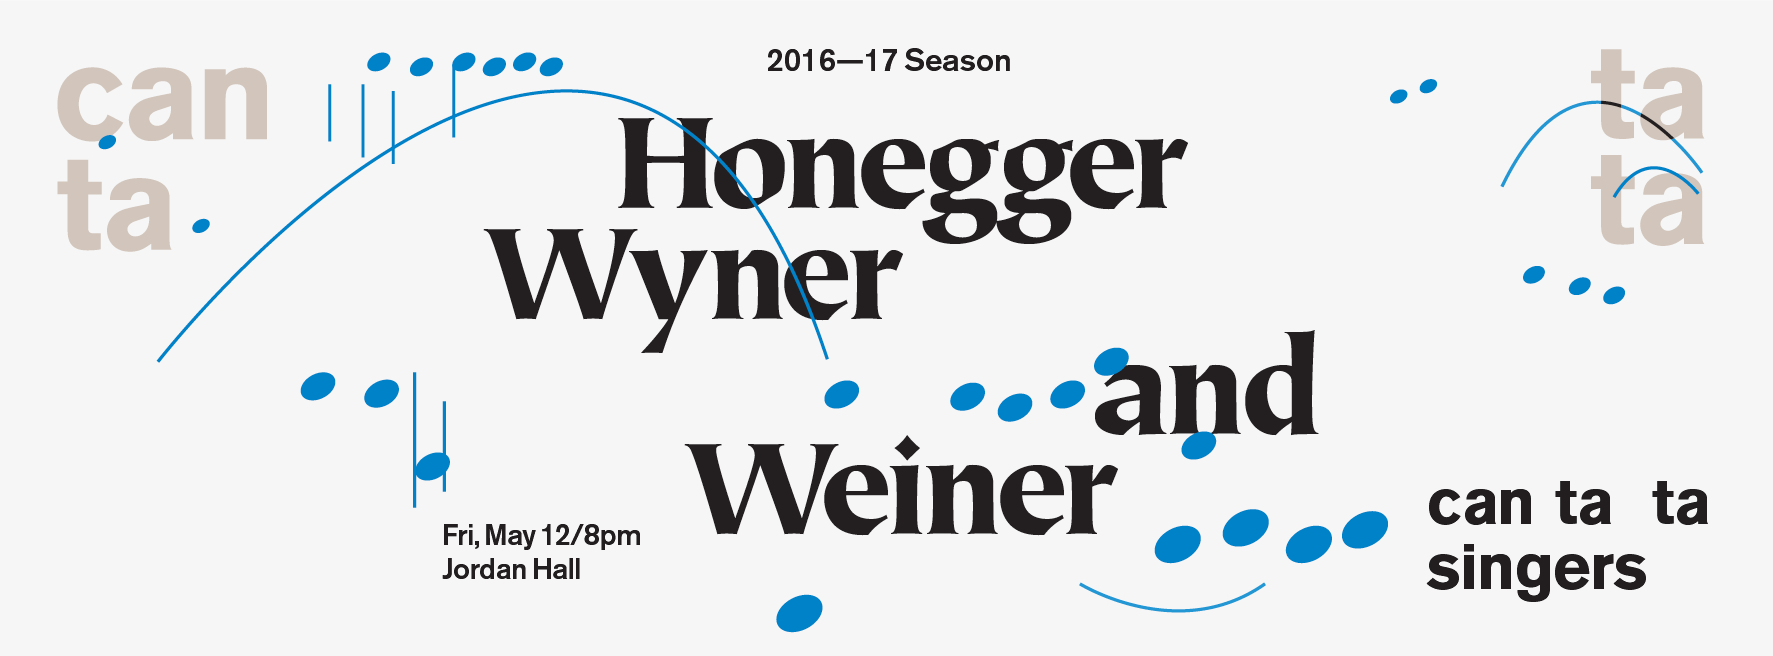 Honegger, Wyner, and Weiner